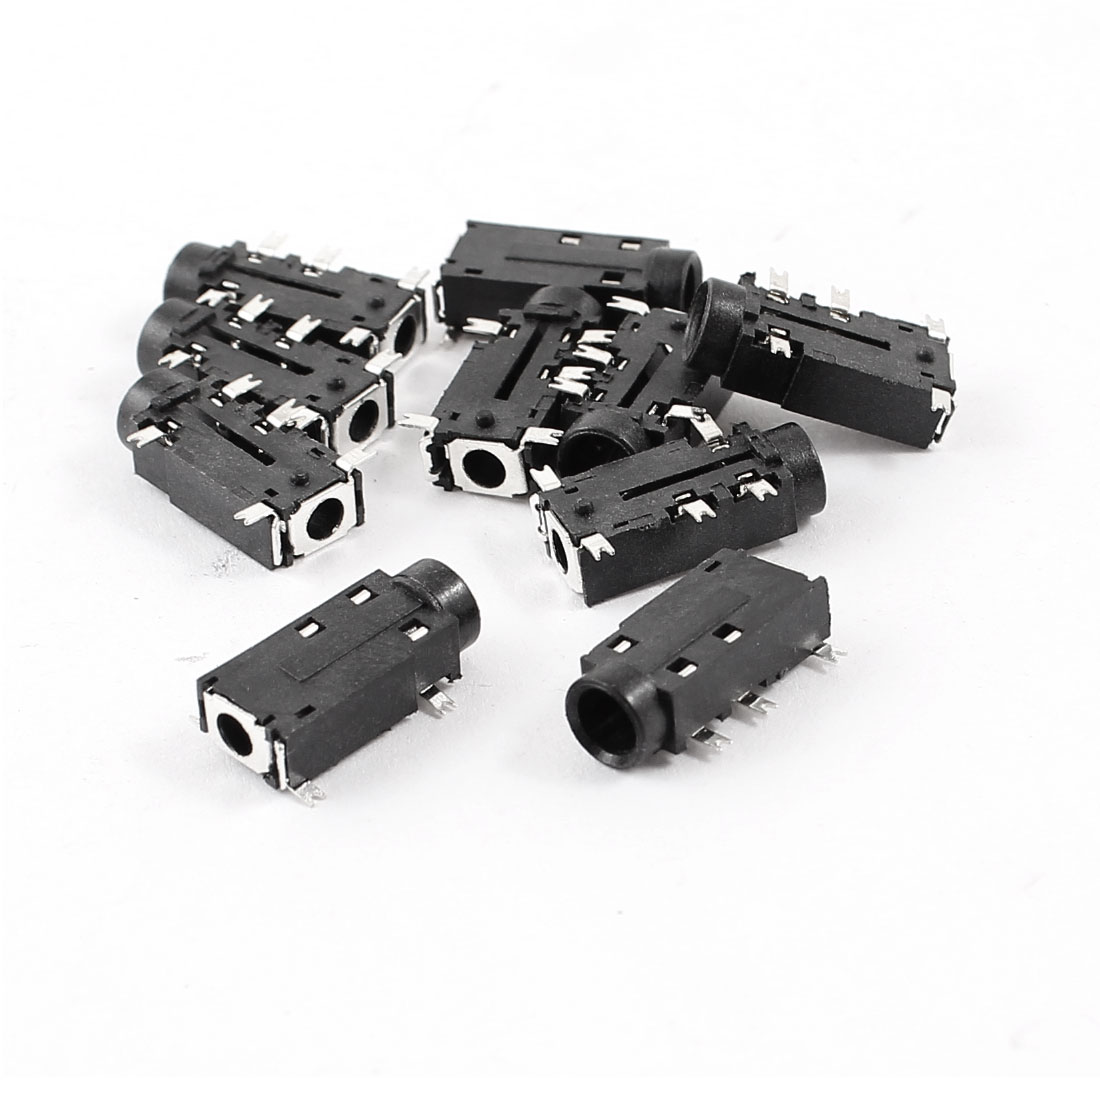 10 Pcs PCB Mount 5 Pin Terminals 3.5mm Female Stereo Audio Jack Connector